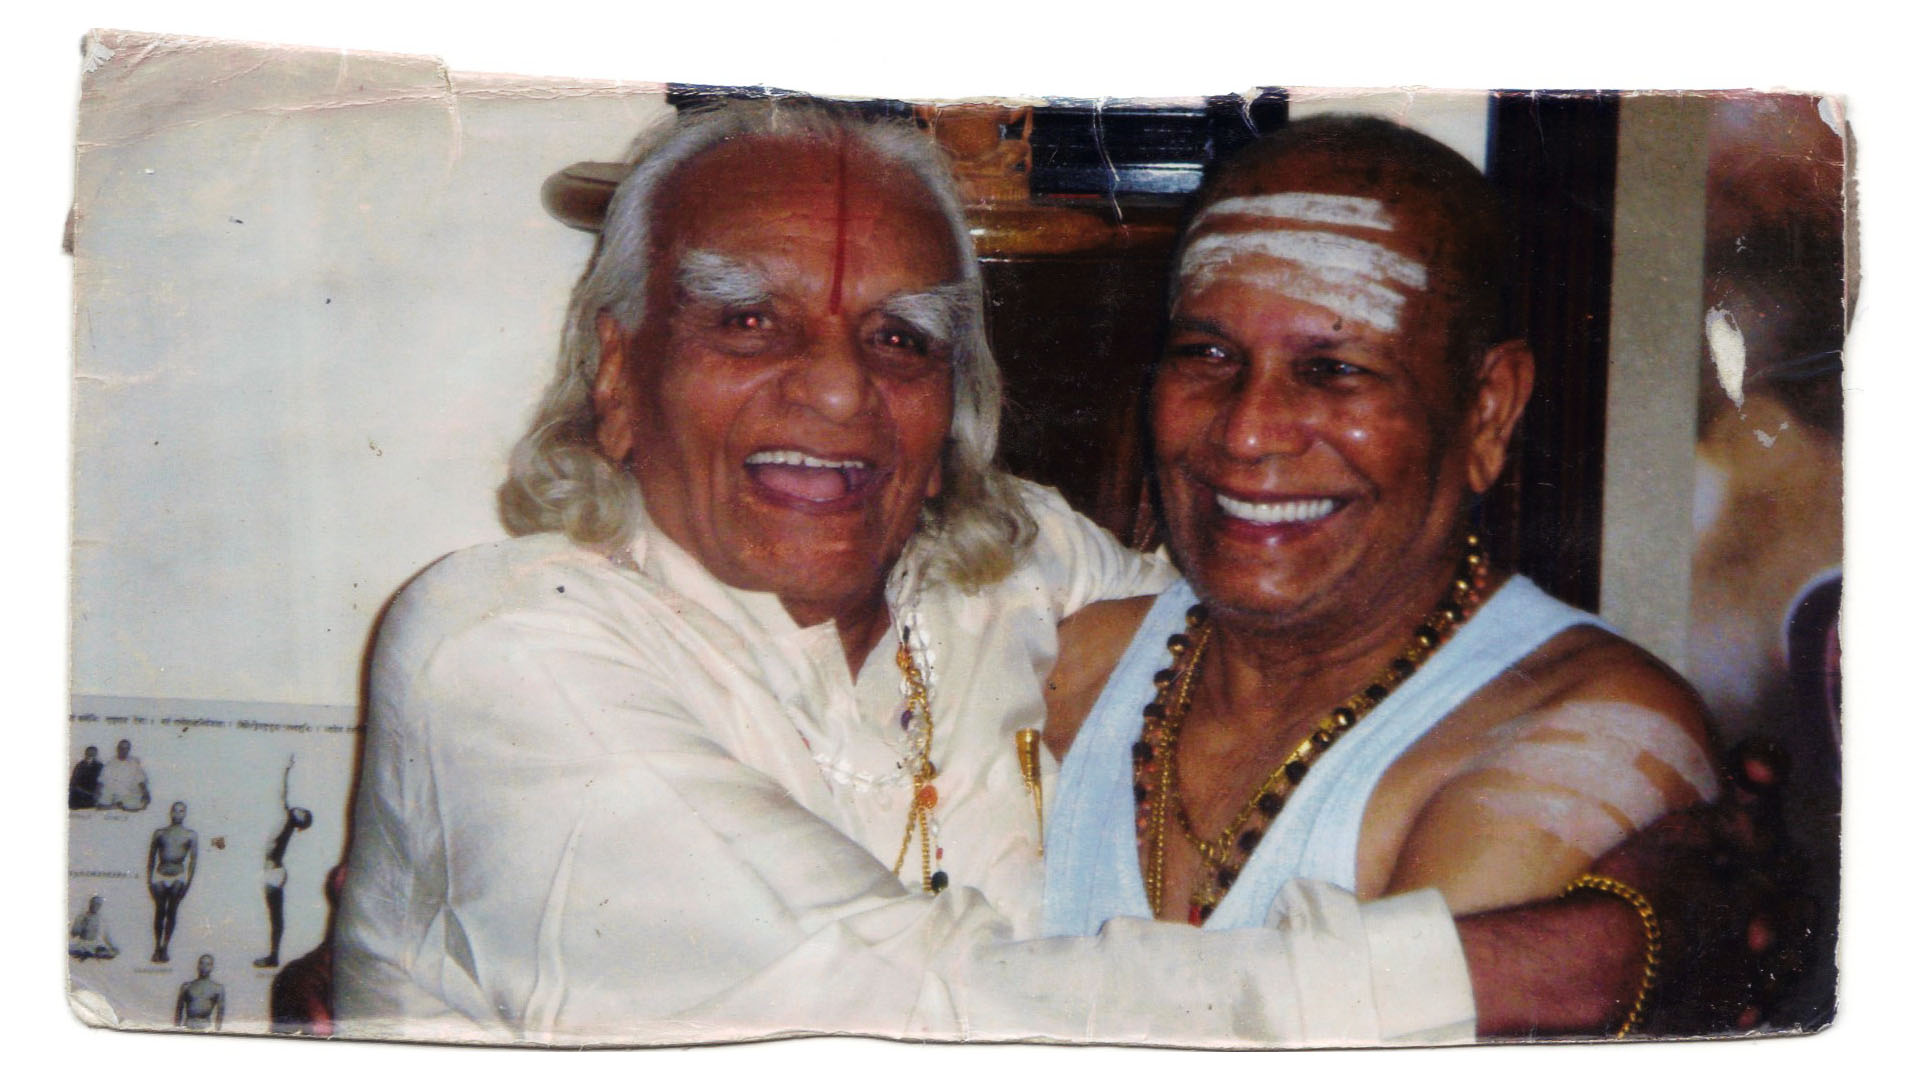 guruji bks iyengar and Pattabhi jois